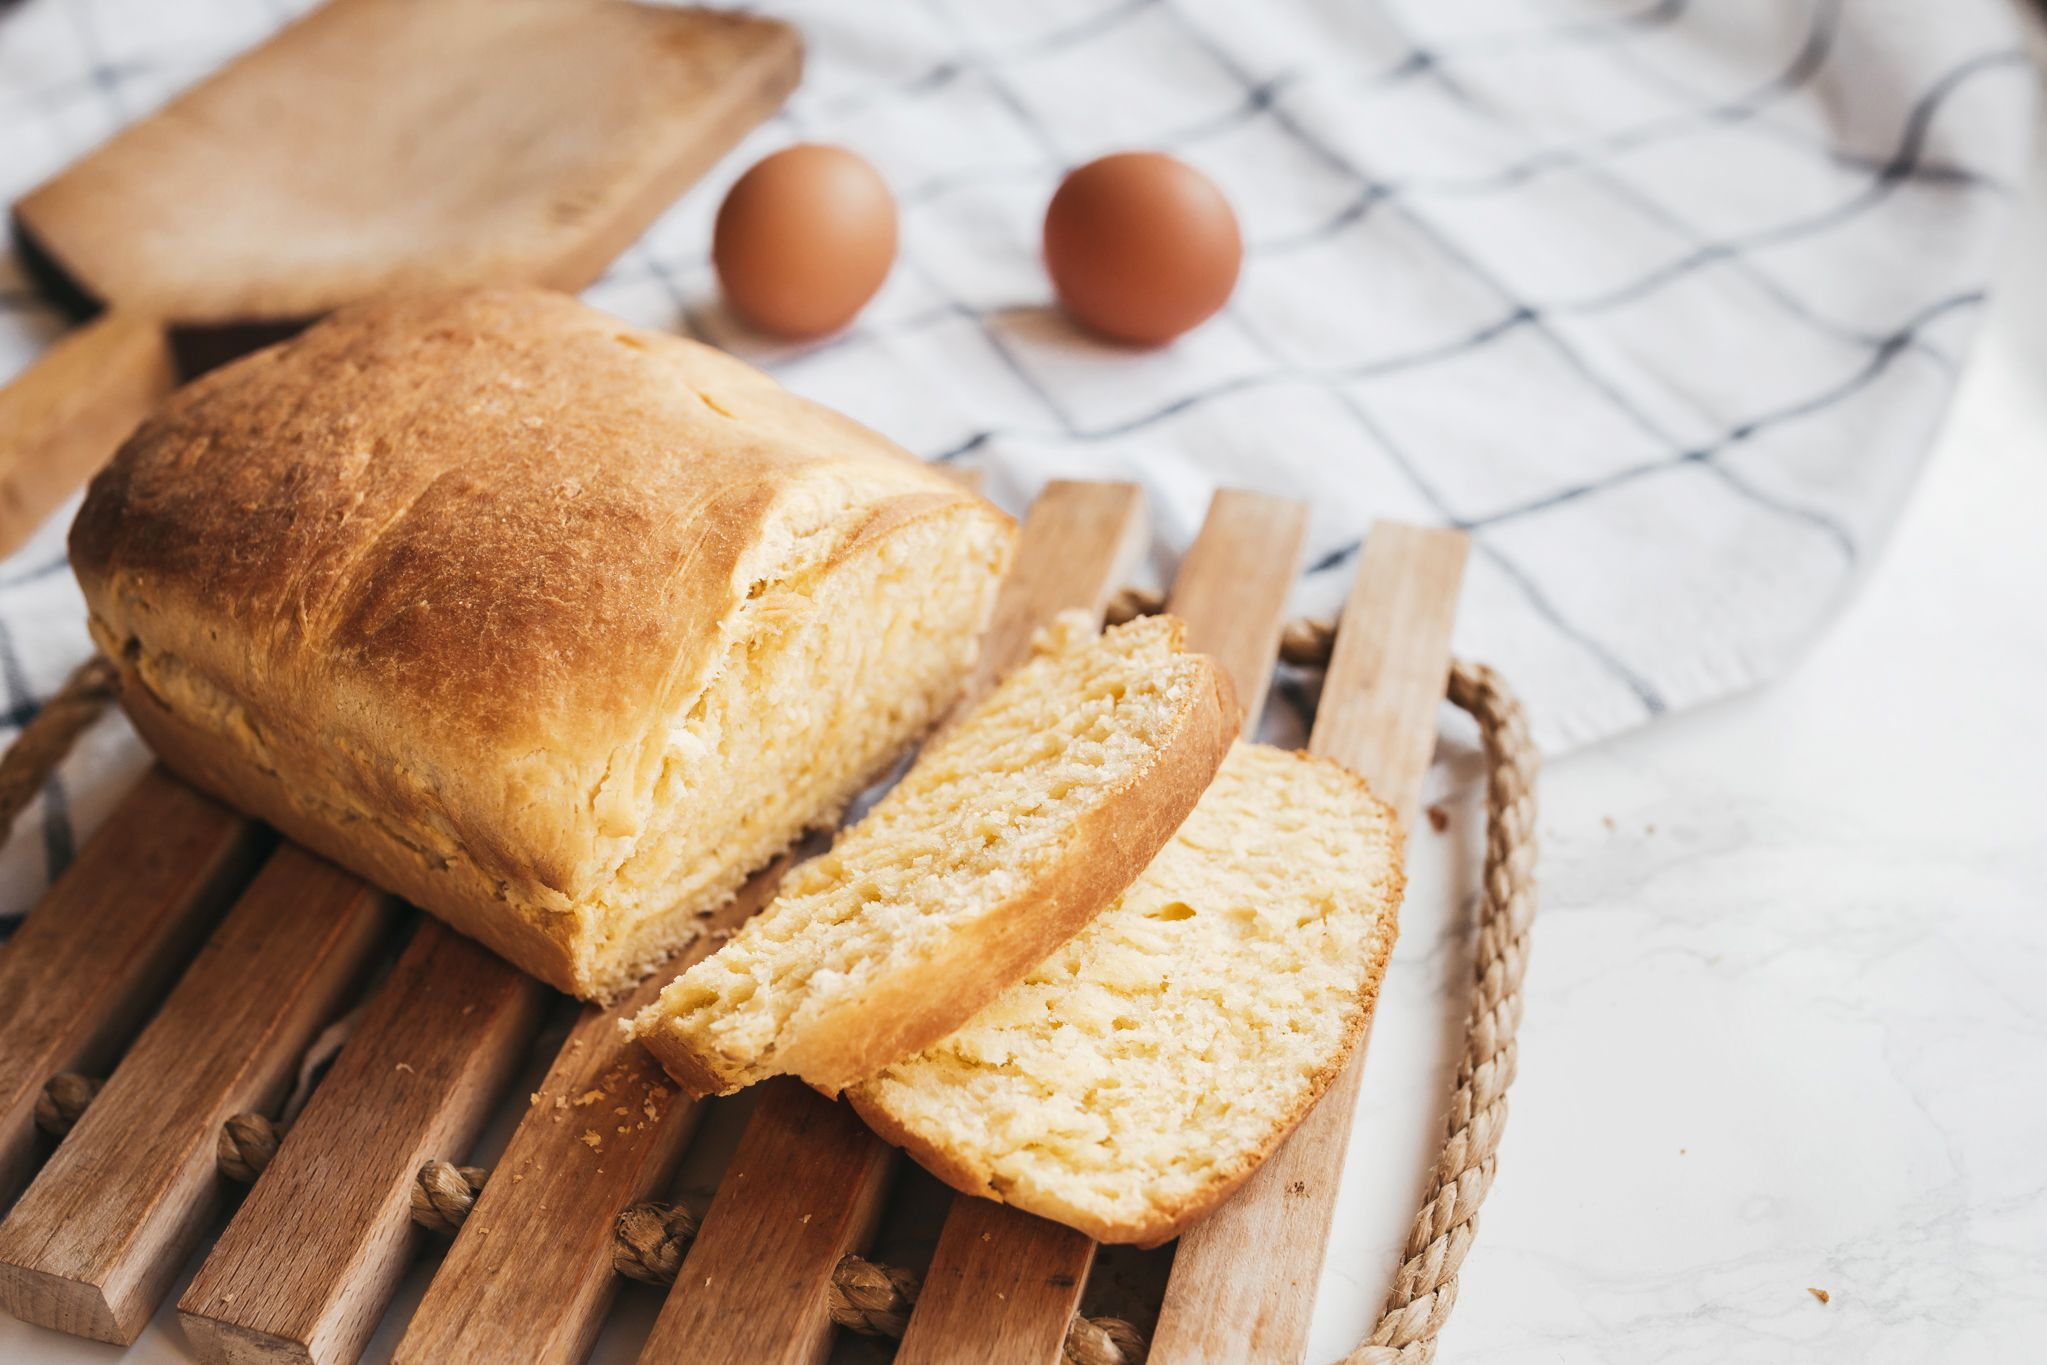 Butter and Egg Bread